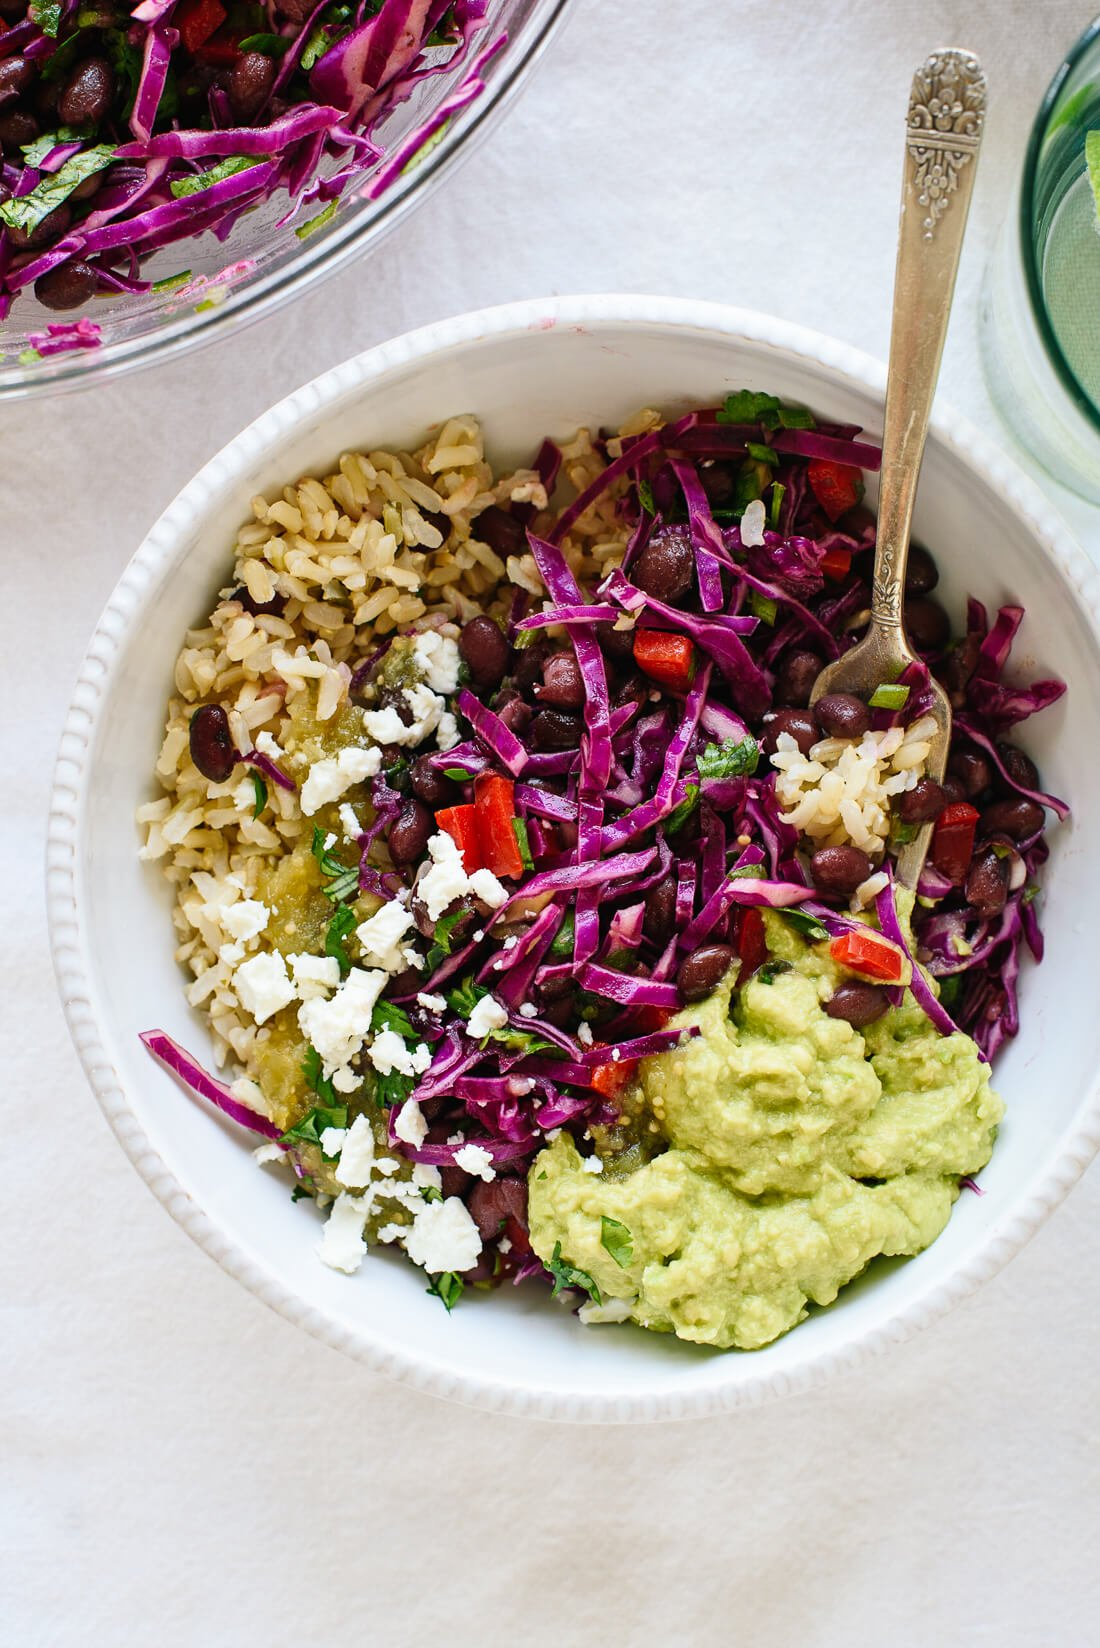 cilantro lime rice in burrito bowl